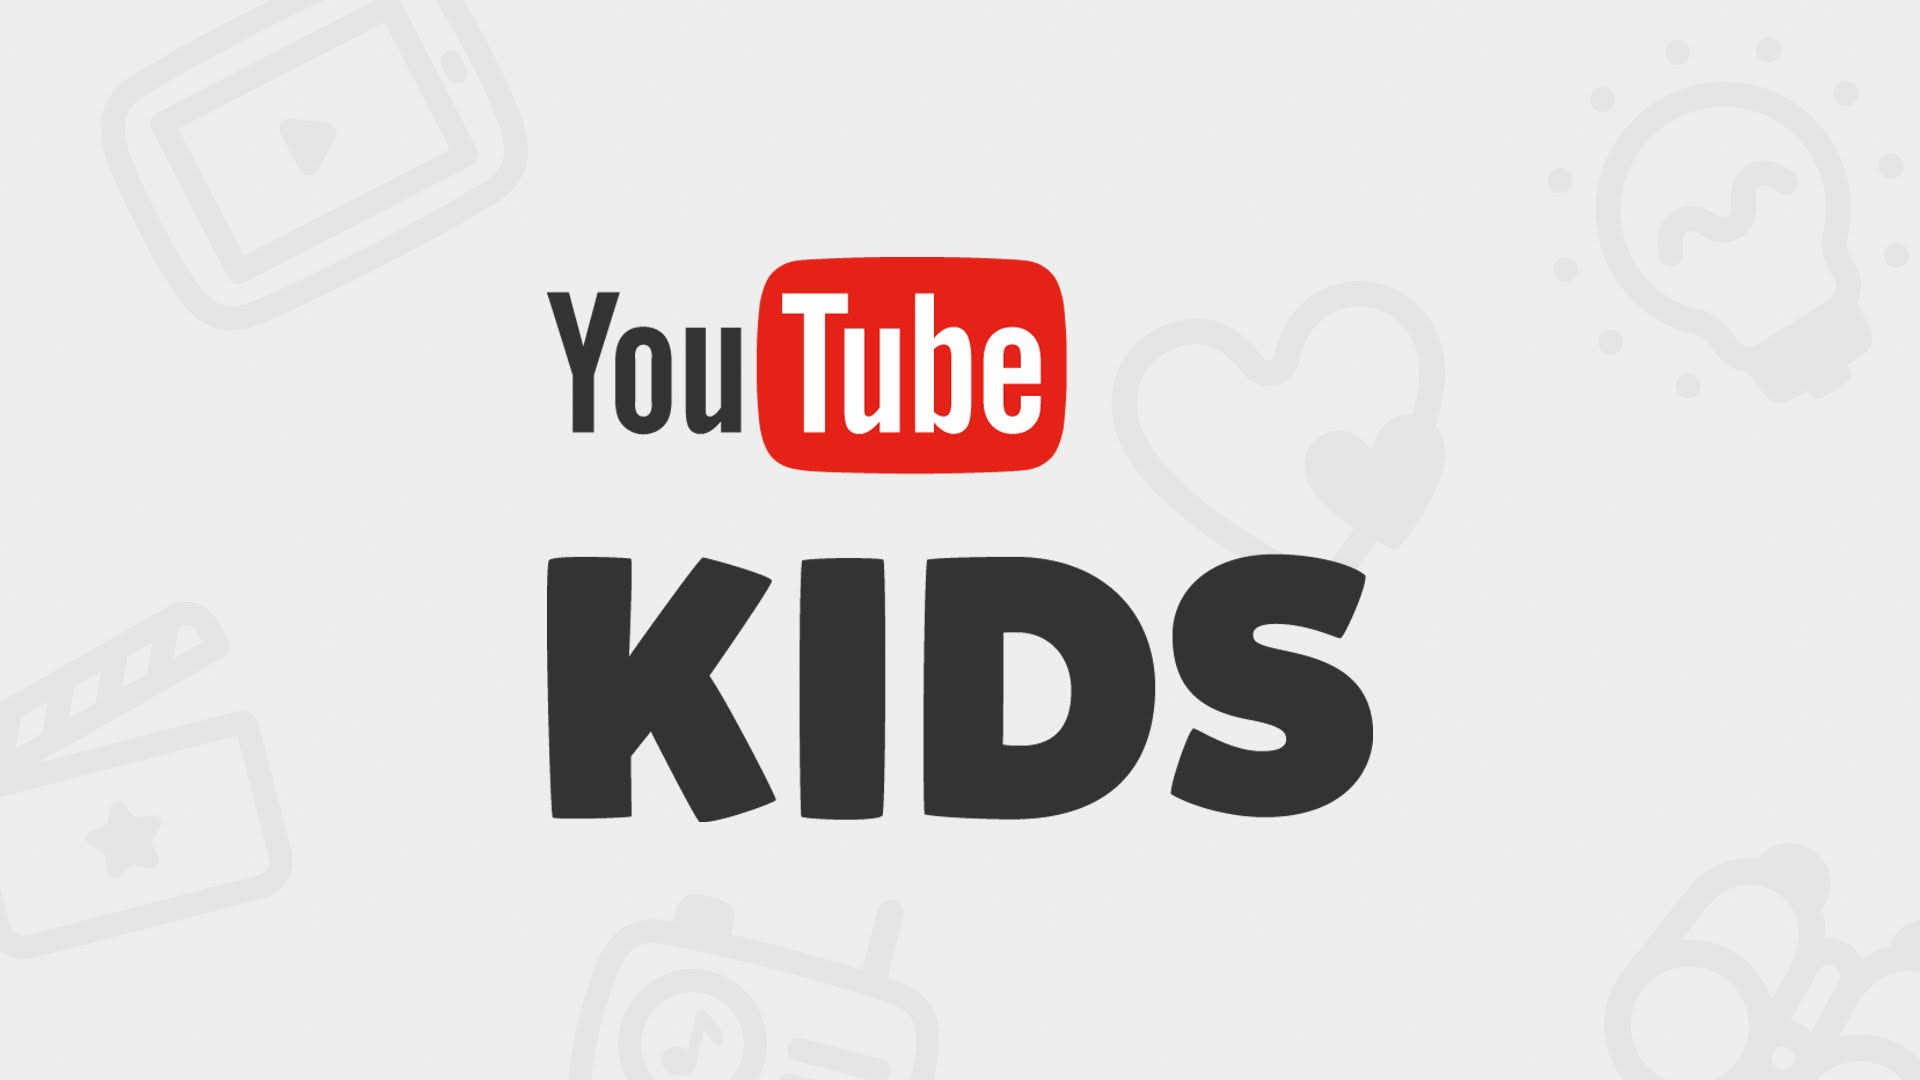 The YouTube App For Kids Face Backlash For Showing Unsuitable Videos